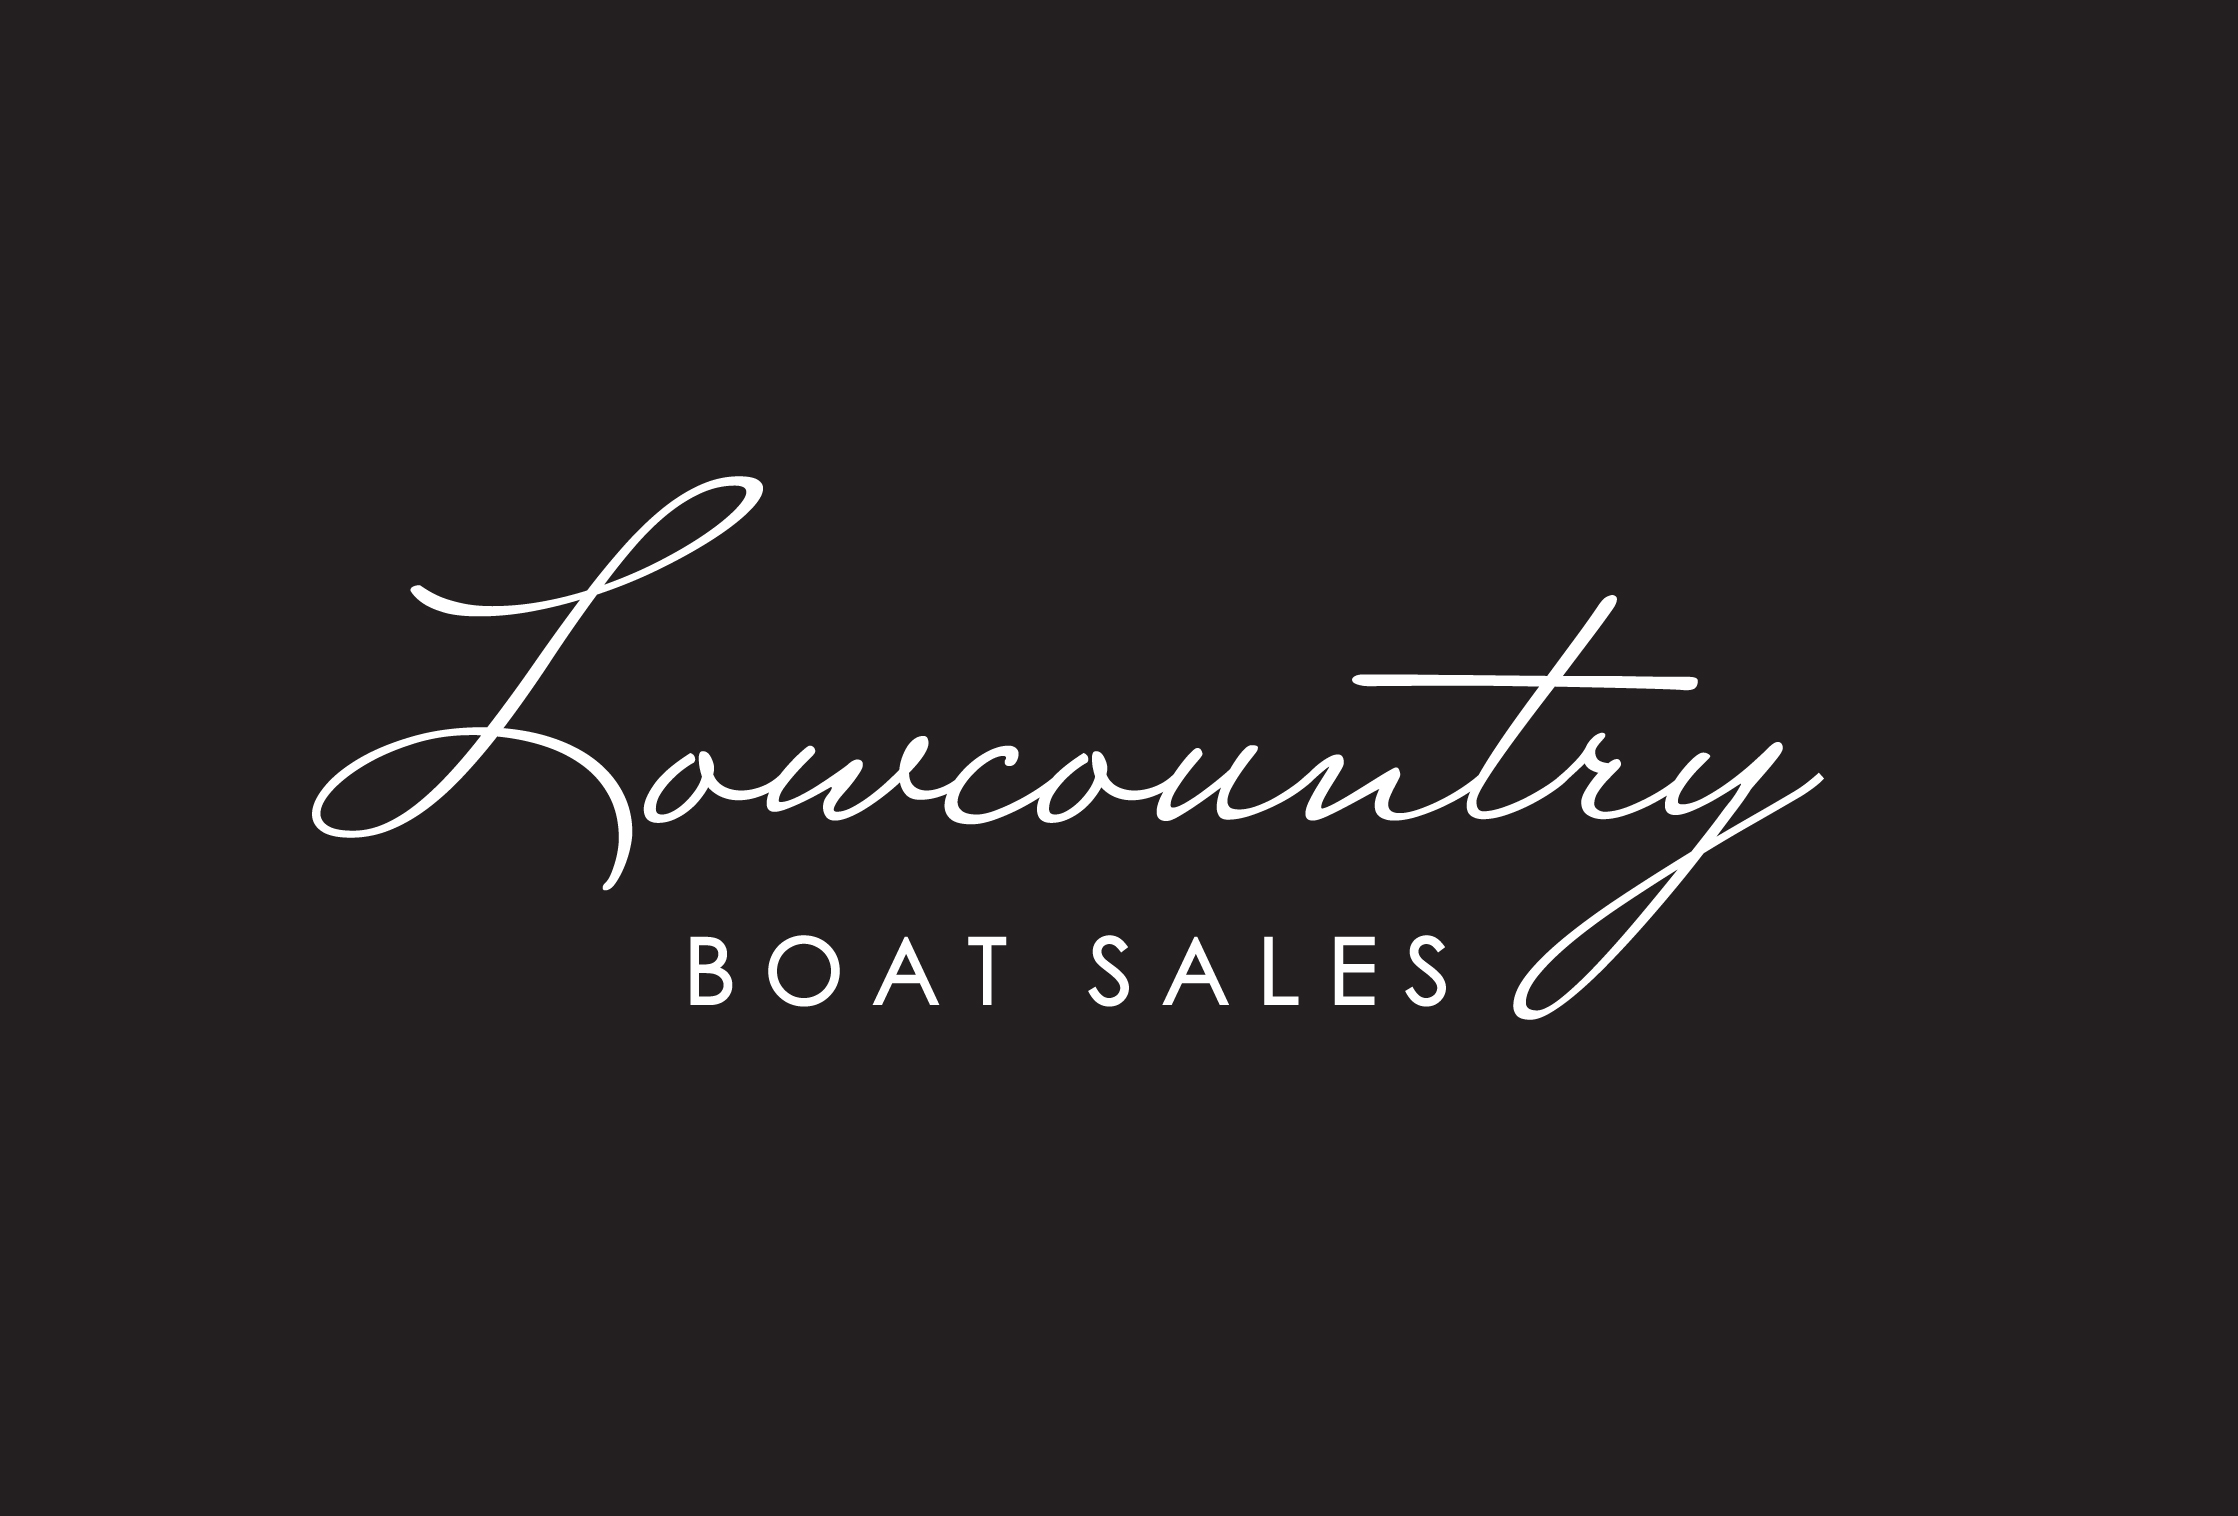 Lowcountry Boat Sales logo